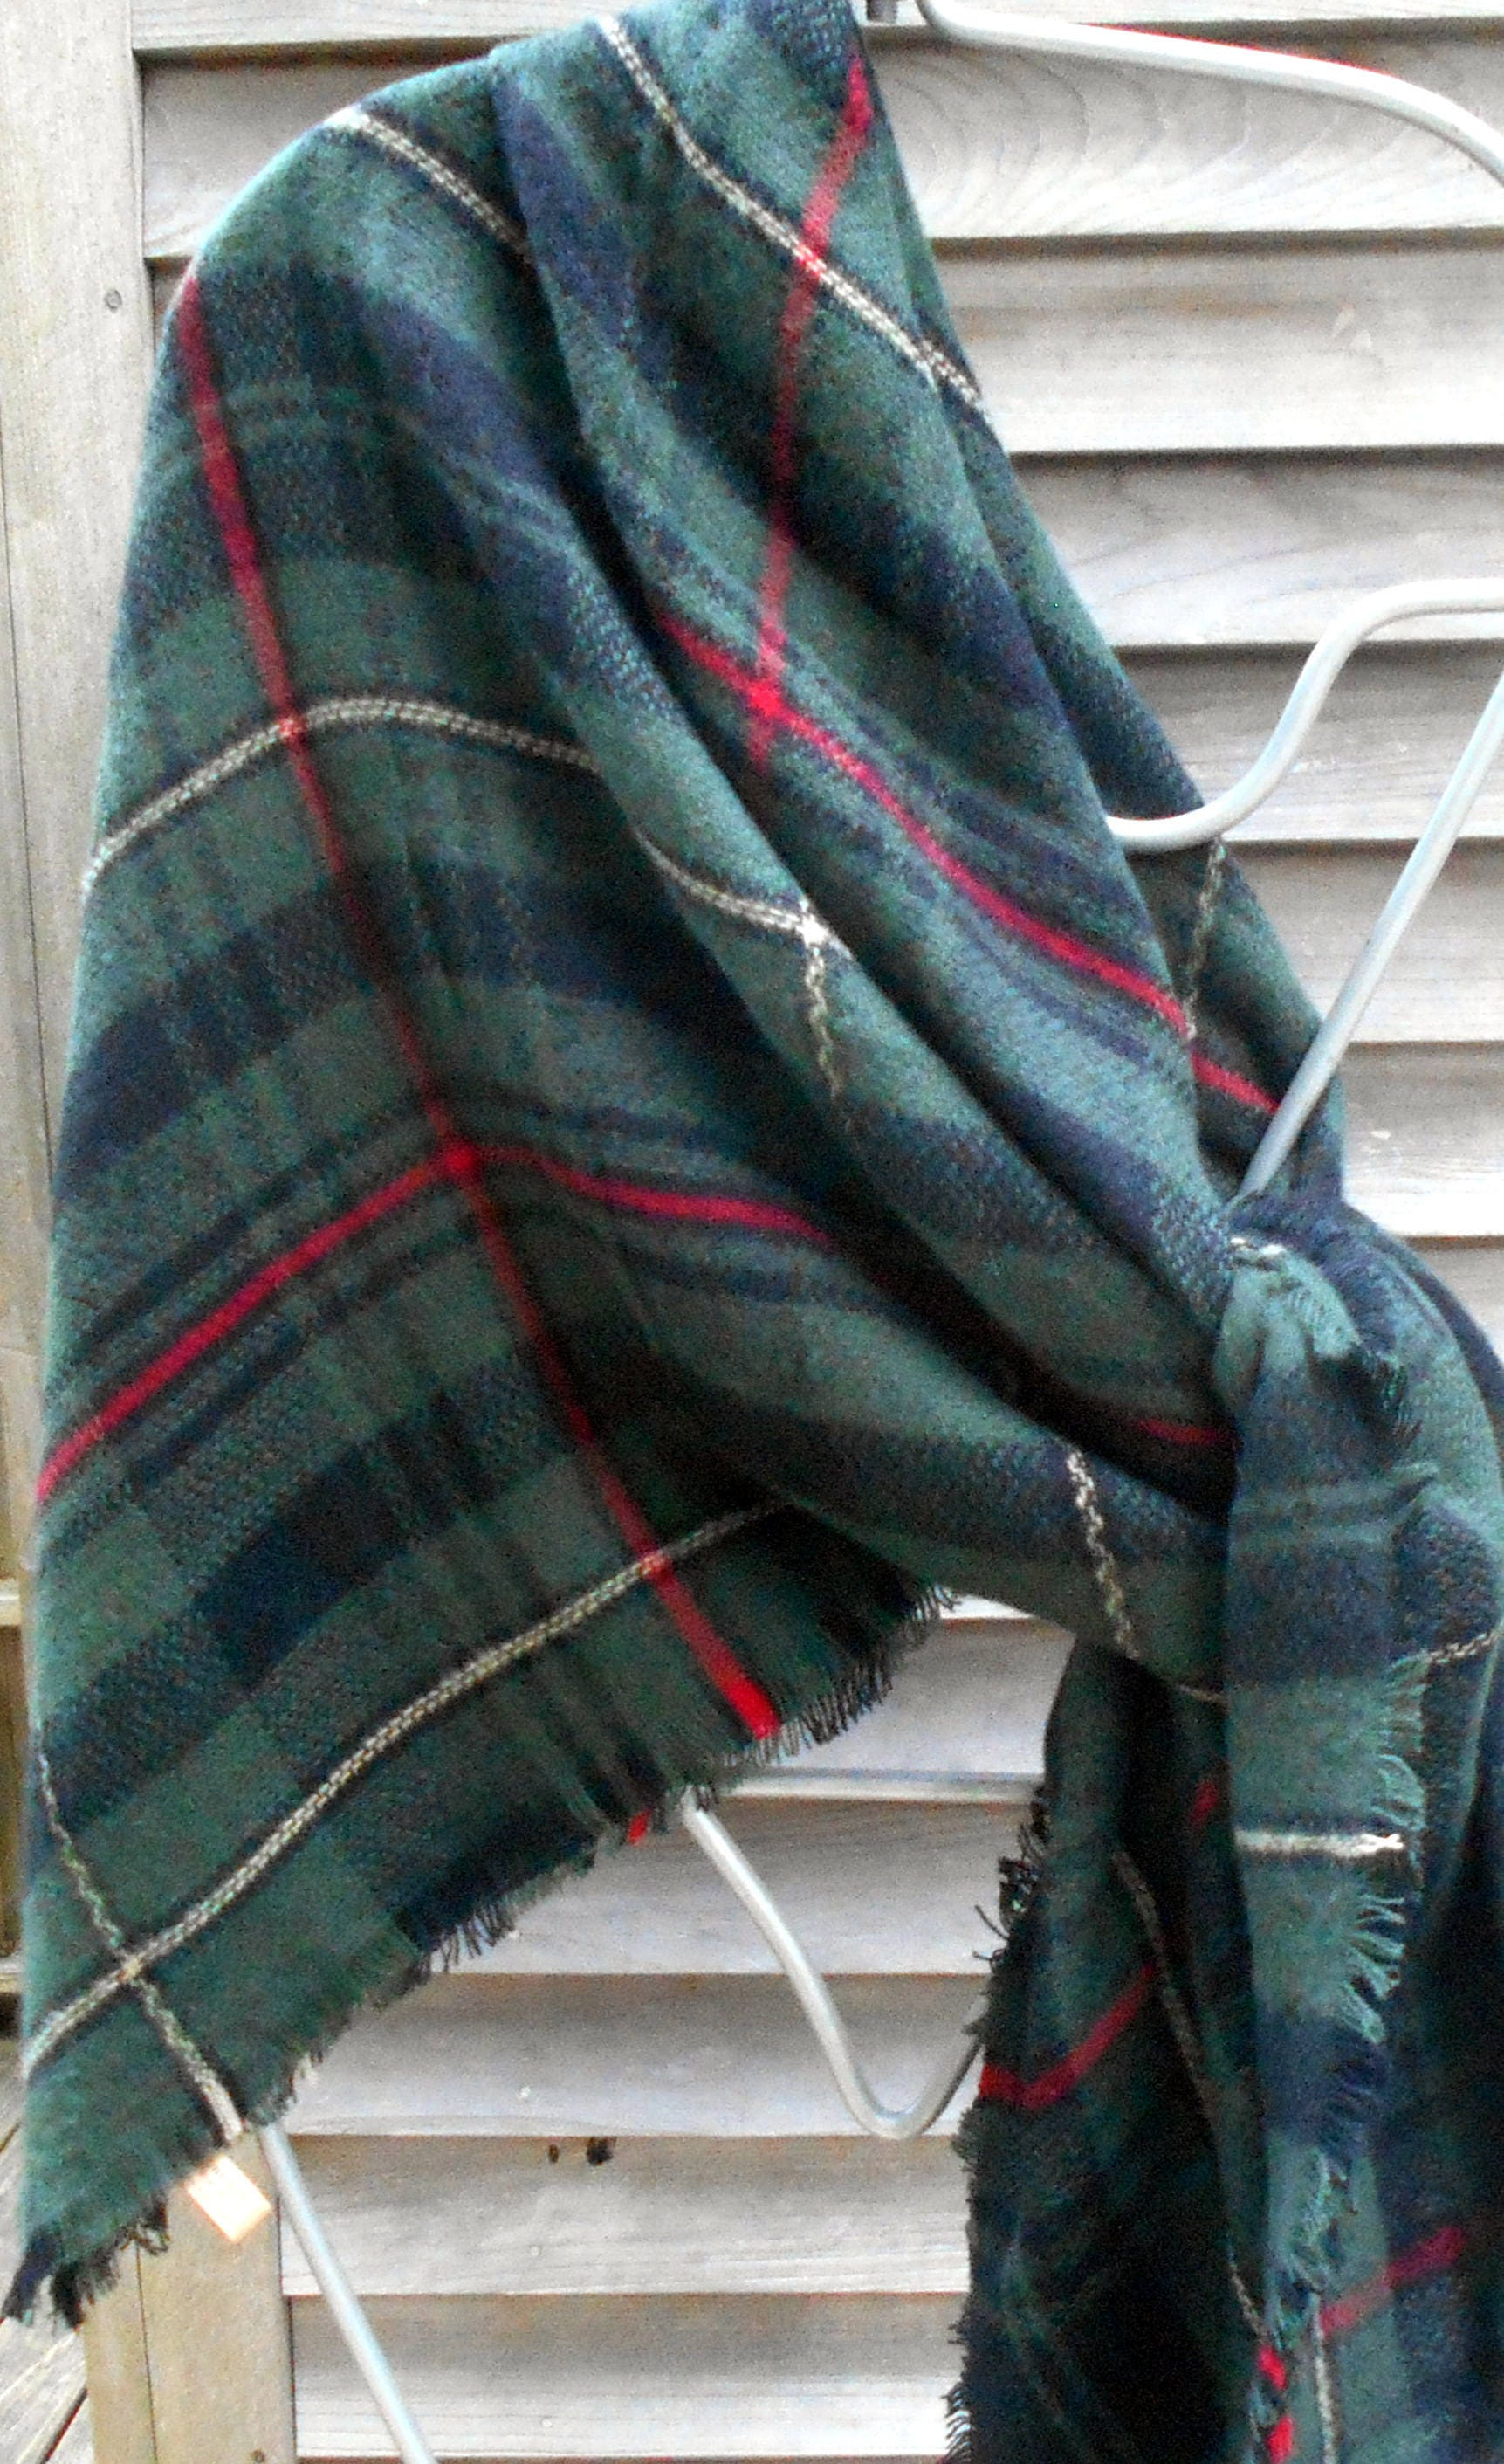 9053c23c75767 Festival Scarf,Blanket Scarf,Olive Green and Red Scarf,Plaid Scarf,Tartan  Scarf,Oversized Scarf,Warm Scarf,Winter Scarf,Stadium Blanket,